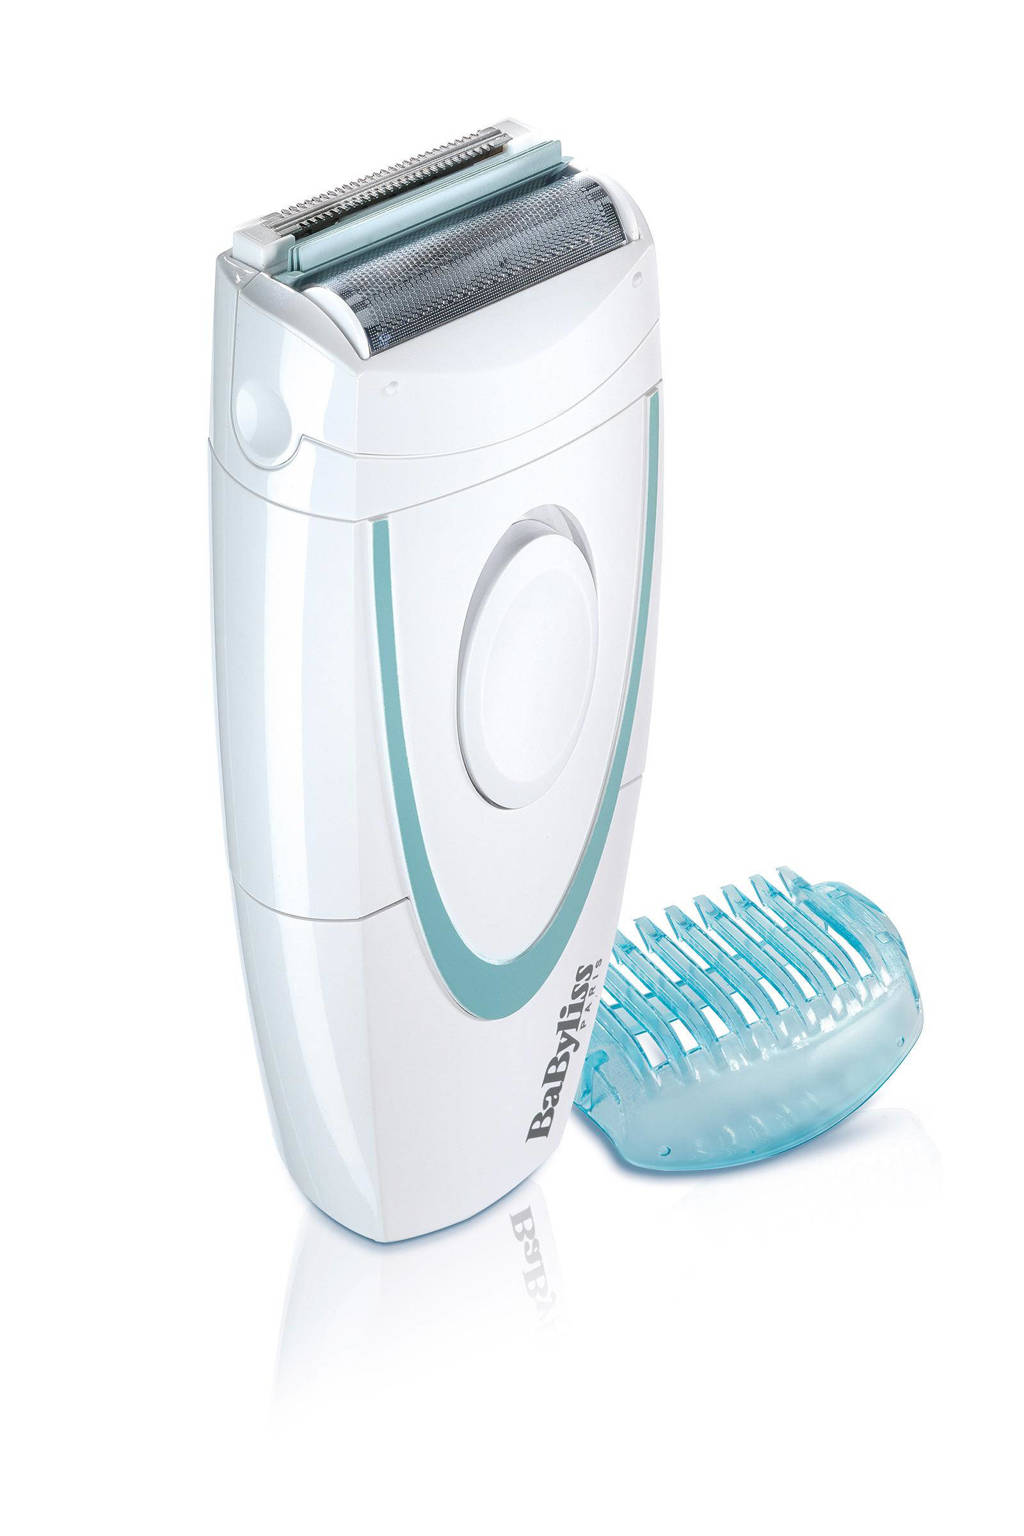 BaByliss G220E Ladyshave 2-in-1